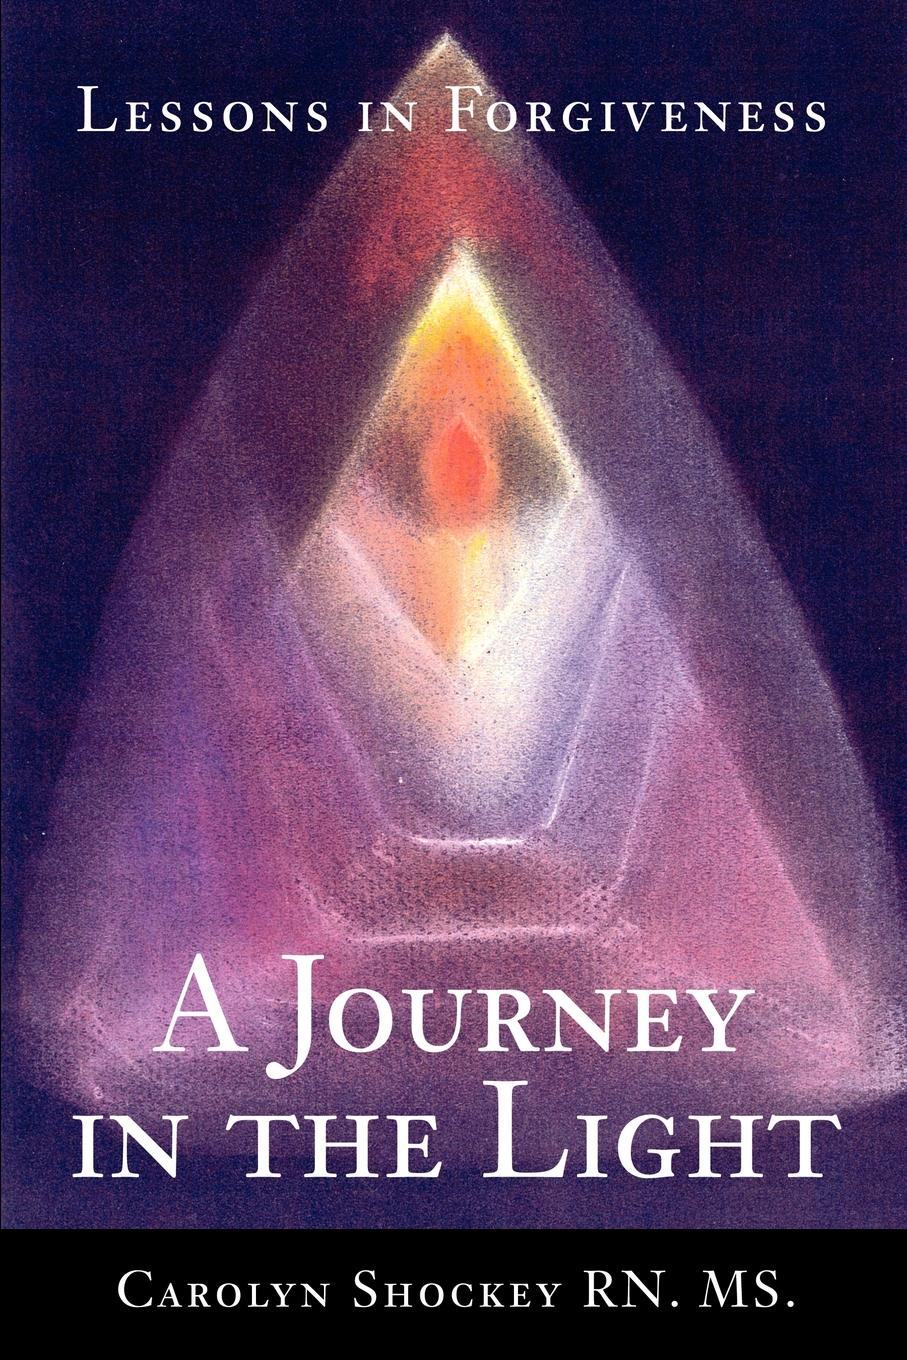 Carolyn Shockey A Journey in the Light. Lessons Forgiveness